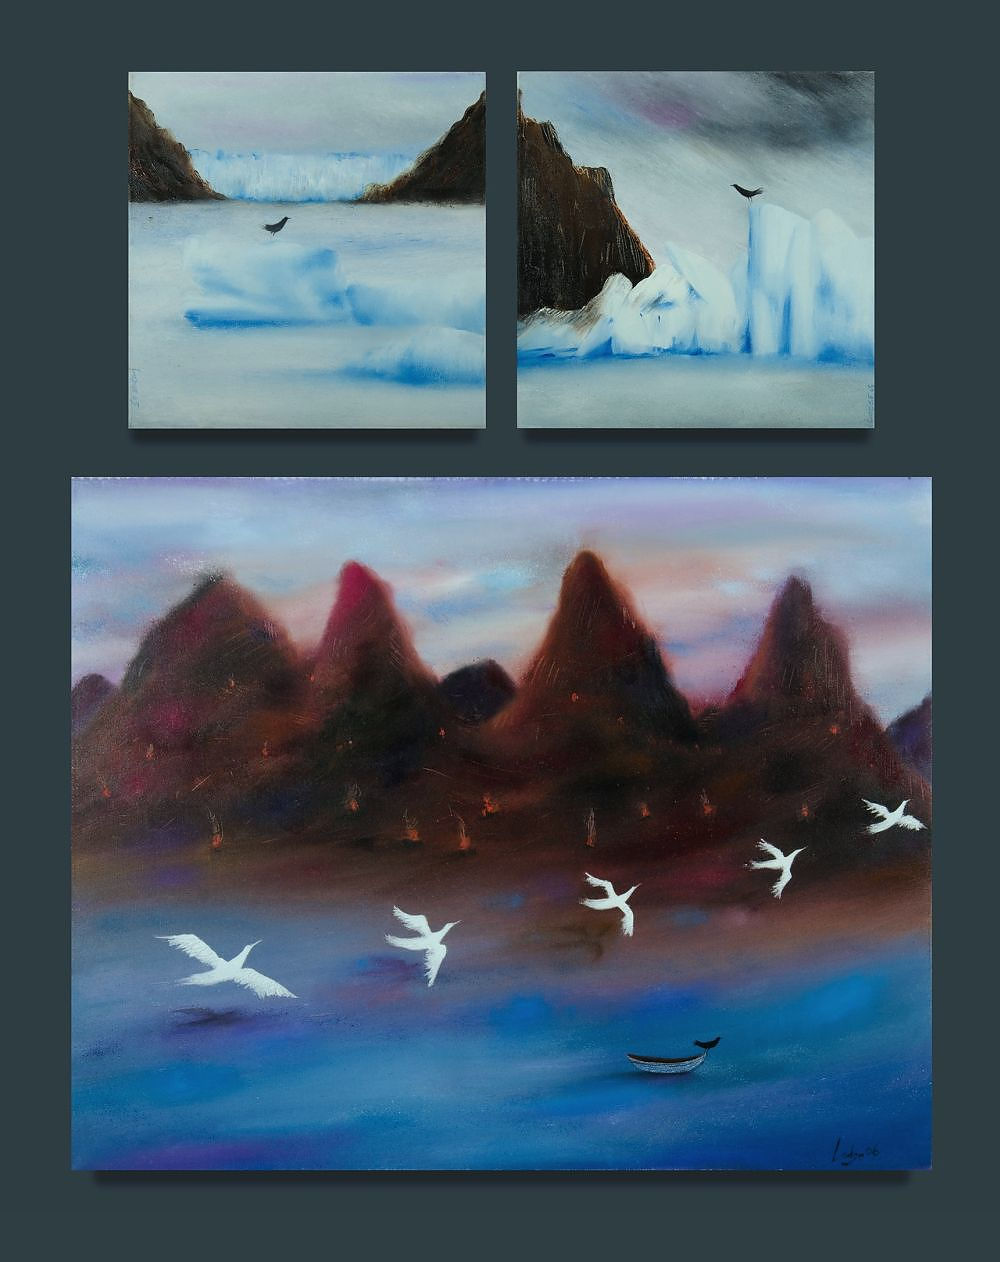 'LODGE, Annette (b.1955) (3) Land of Fire, 2006 (61x76cm); Glacier Grey, Patagonia I & III, 2005 (30x30cm each). All ex Soho Galleries, Sydney Oil on Canvas (3)'